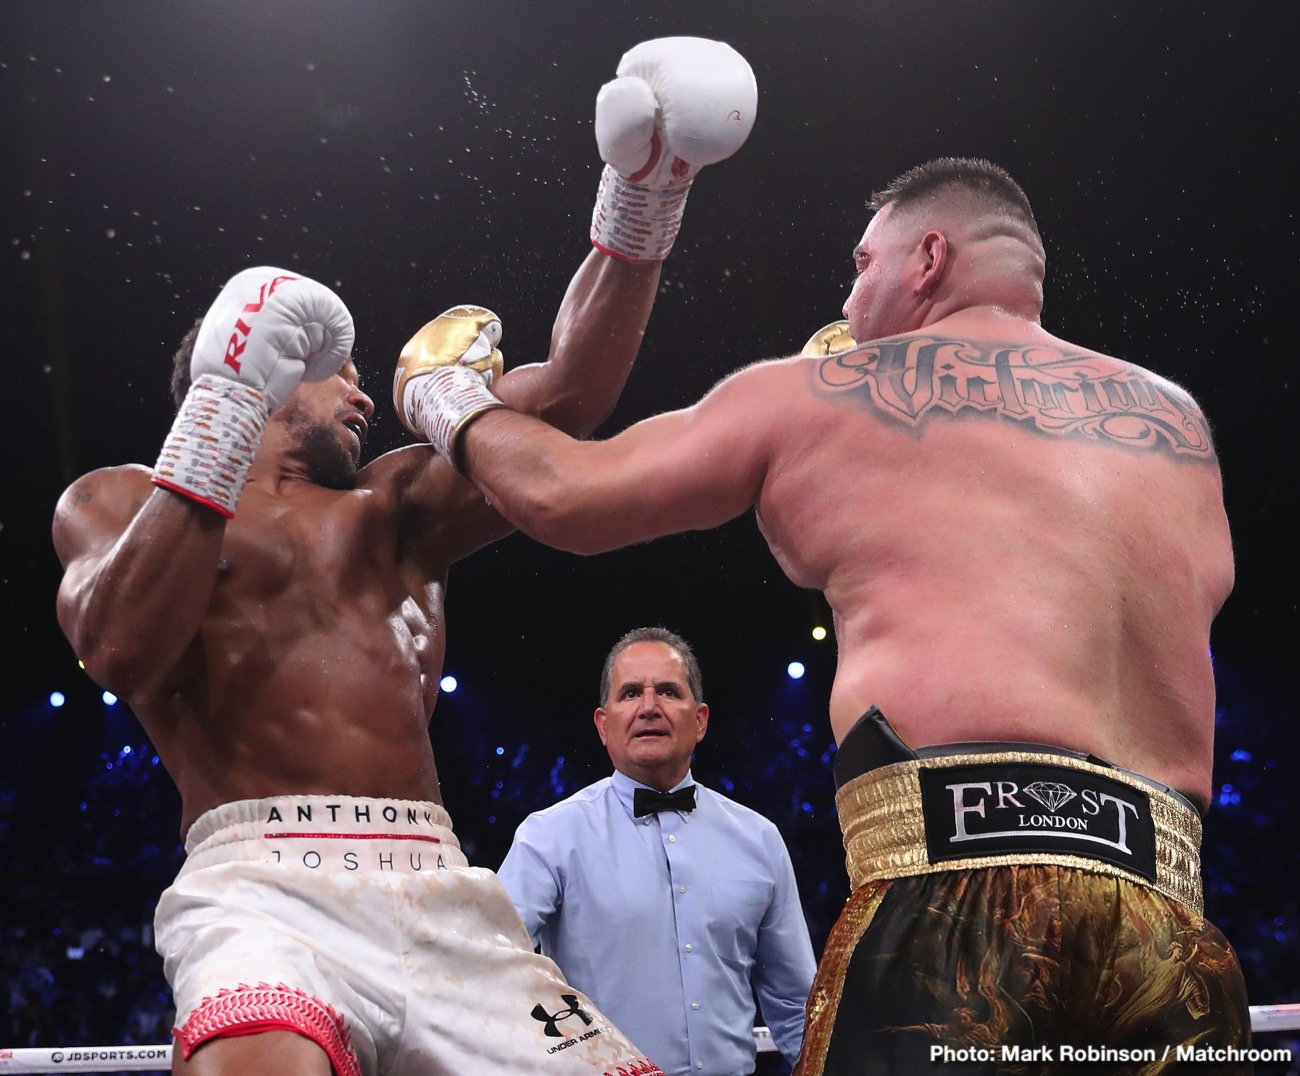 Anthony Joshua, Deontay Wilder, Eddie Hearn, Kubrat Pulev, Tyson Fury - Anthony Joshua is champing at the bit to tear through the heavyweight division and DESTROY Tyson Fury, according to promoter Eddie Hearn.